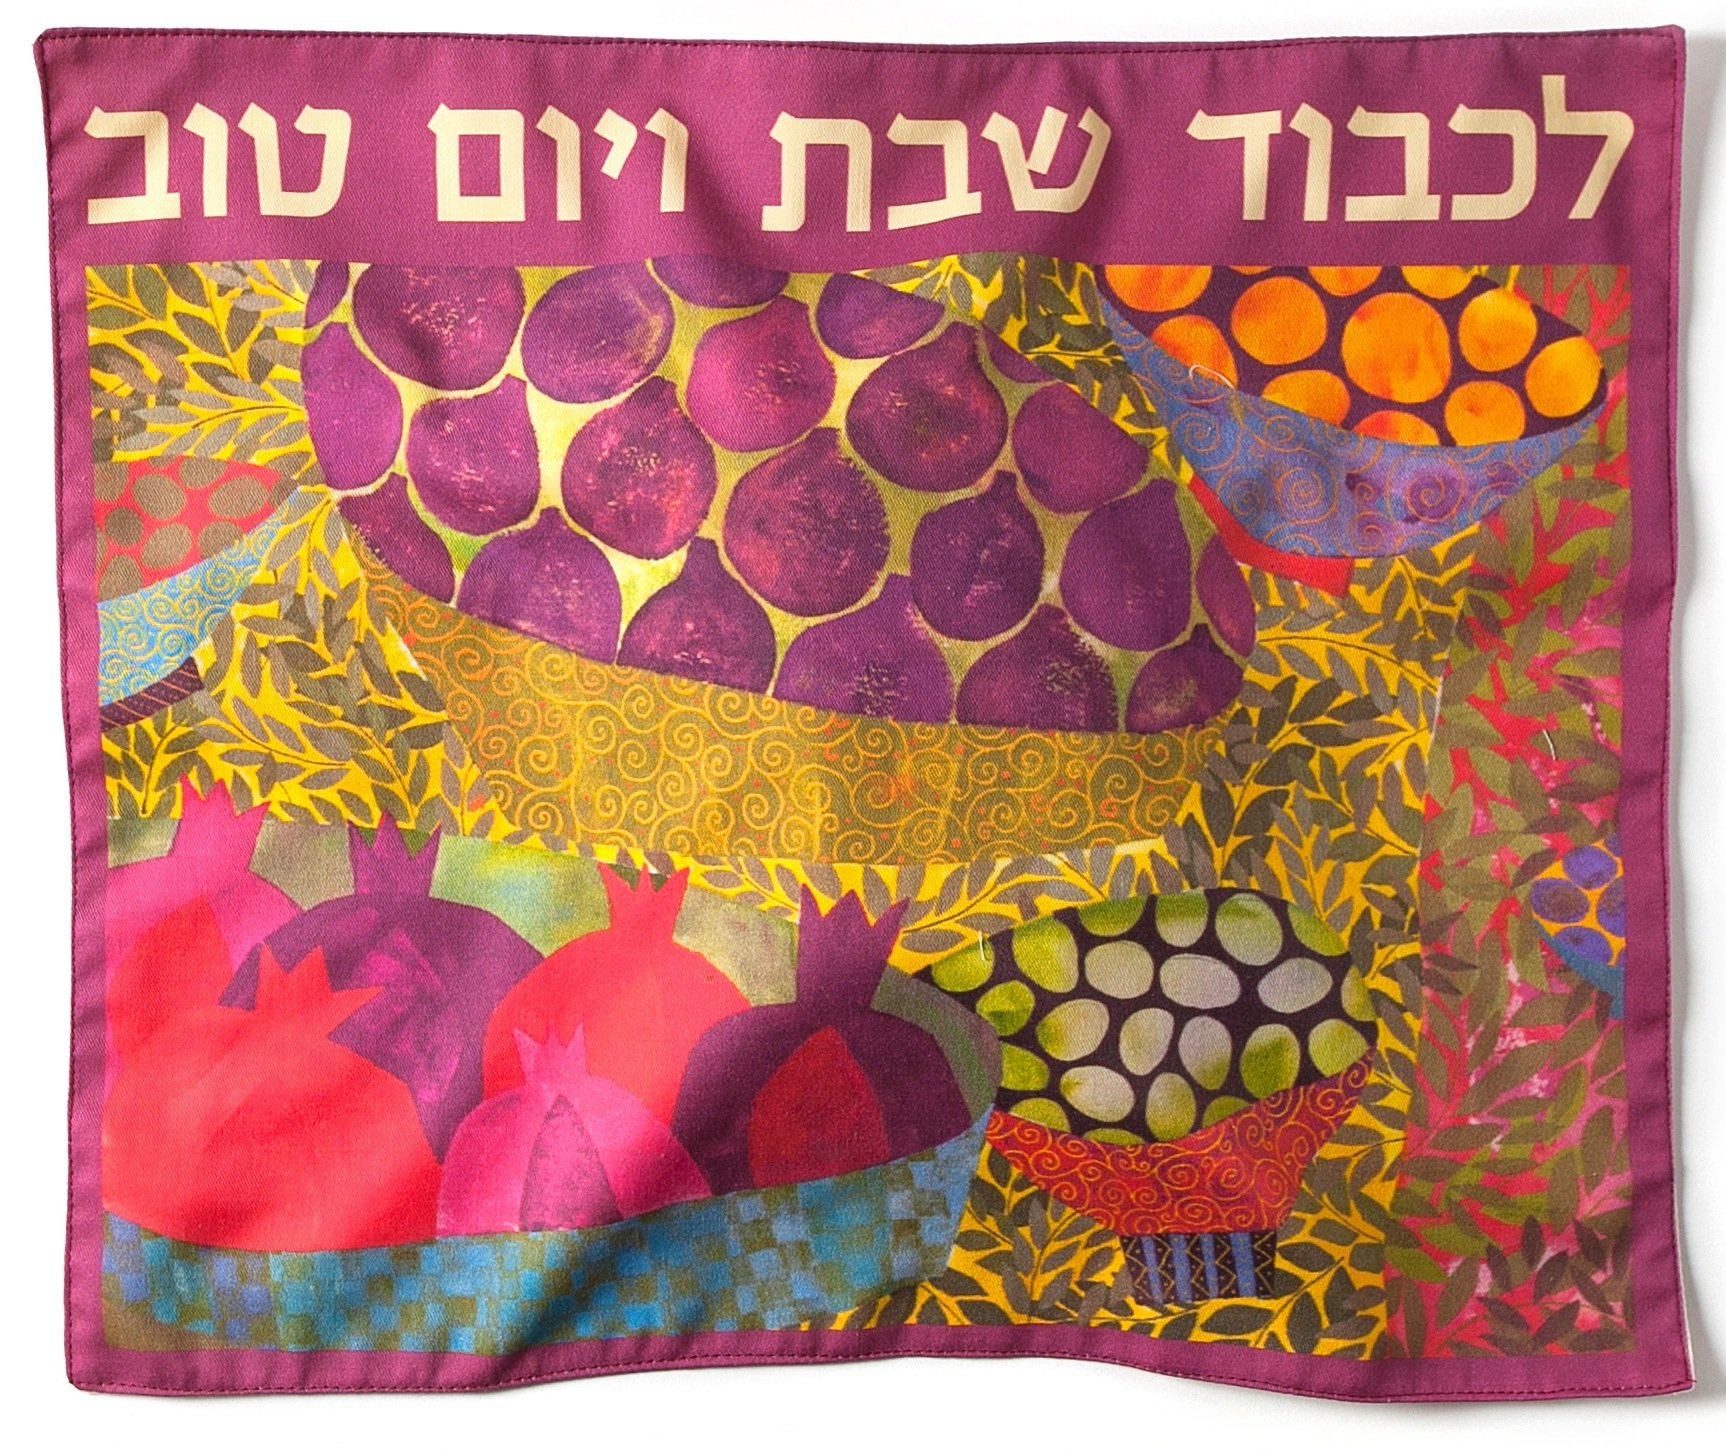 Barbara Shaw Gifts Decorative Sabath Challah/Bread Cover, Kosher, Seven Species Great Jewish Gifts for Women,Great Gifts for Festival and Jewish Year, Jewish Gifts for The Home Made in Jerusalem…